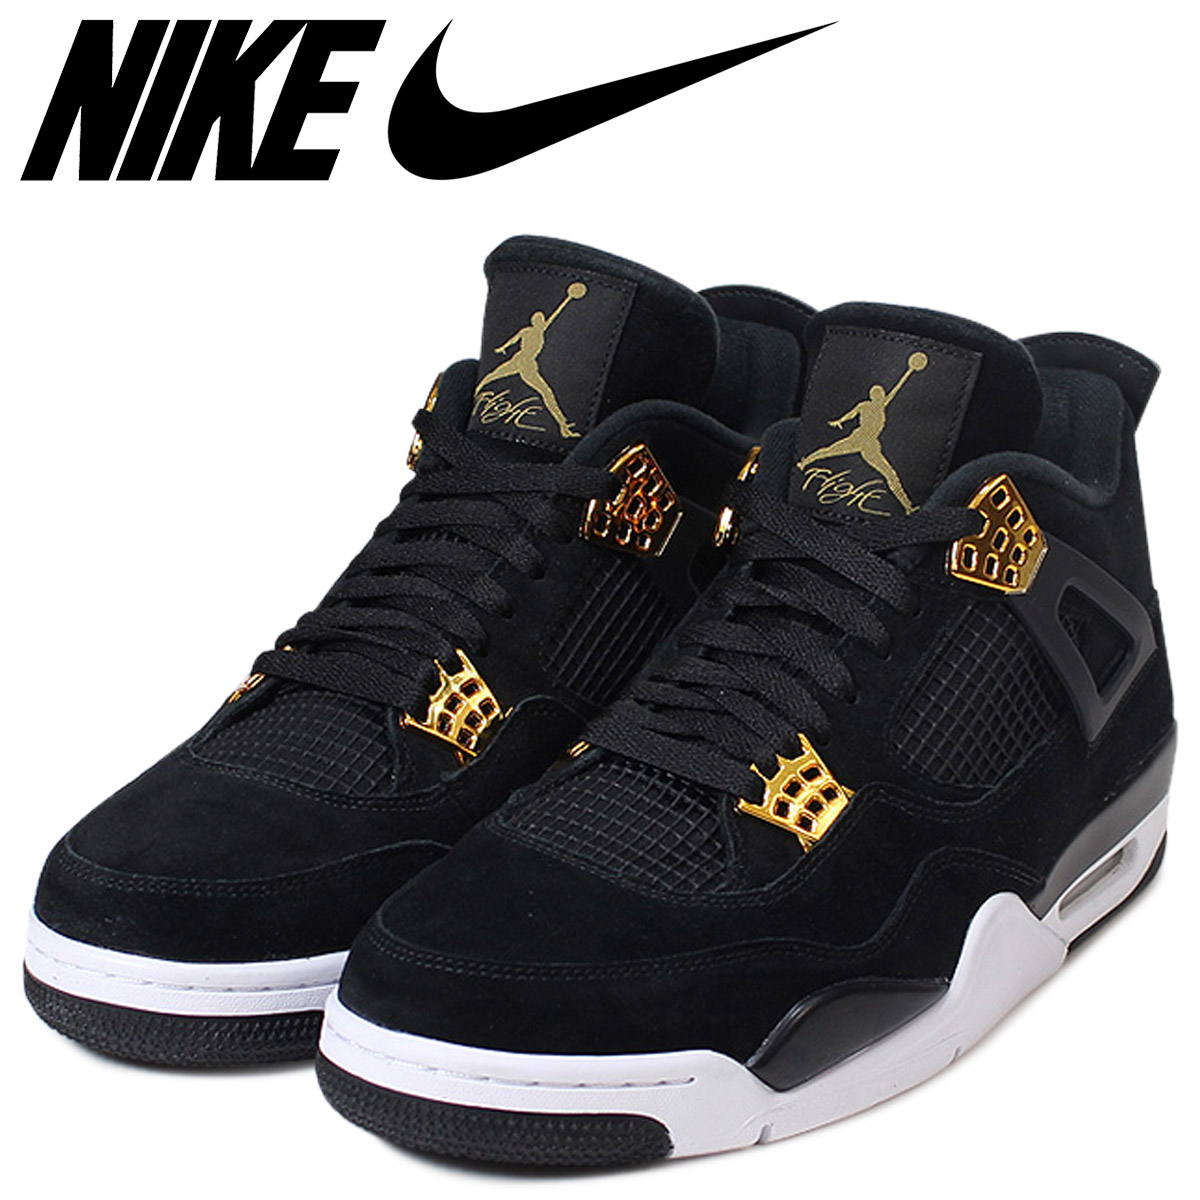 Nike Air Jordan 4 Retro Royalty (308497 032) Men's Shoes